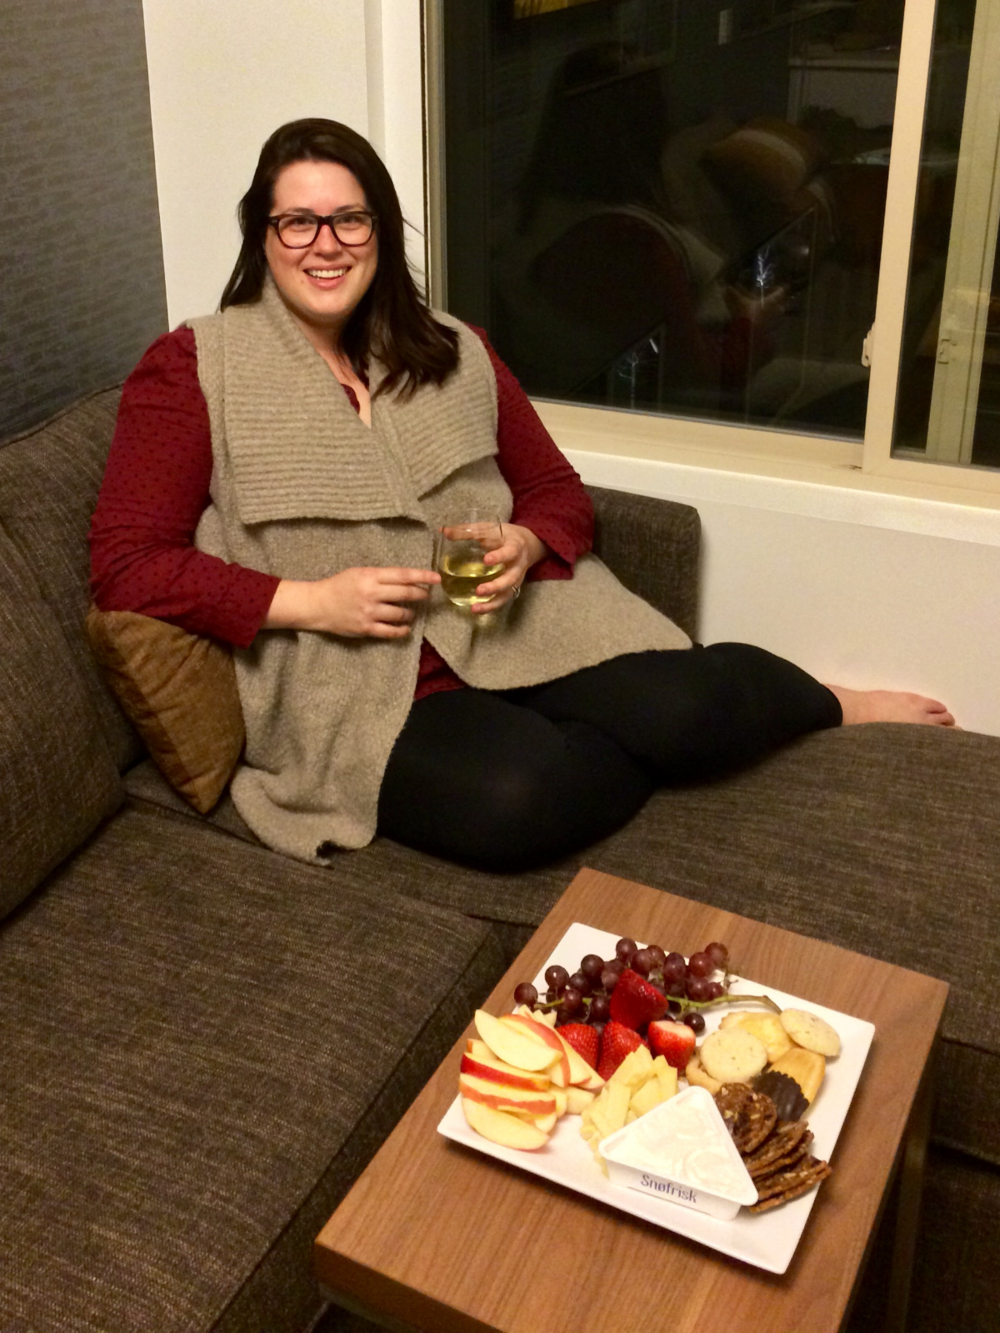 Kurt put together a fruit and cheese plate for our first night!